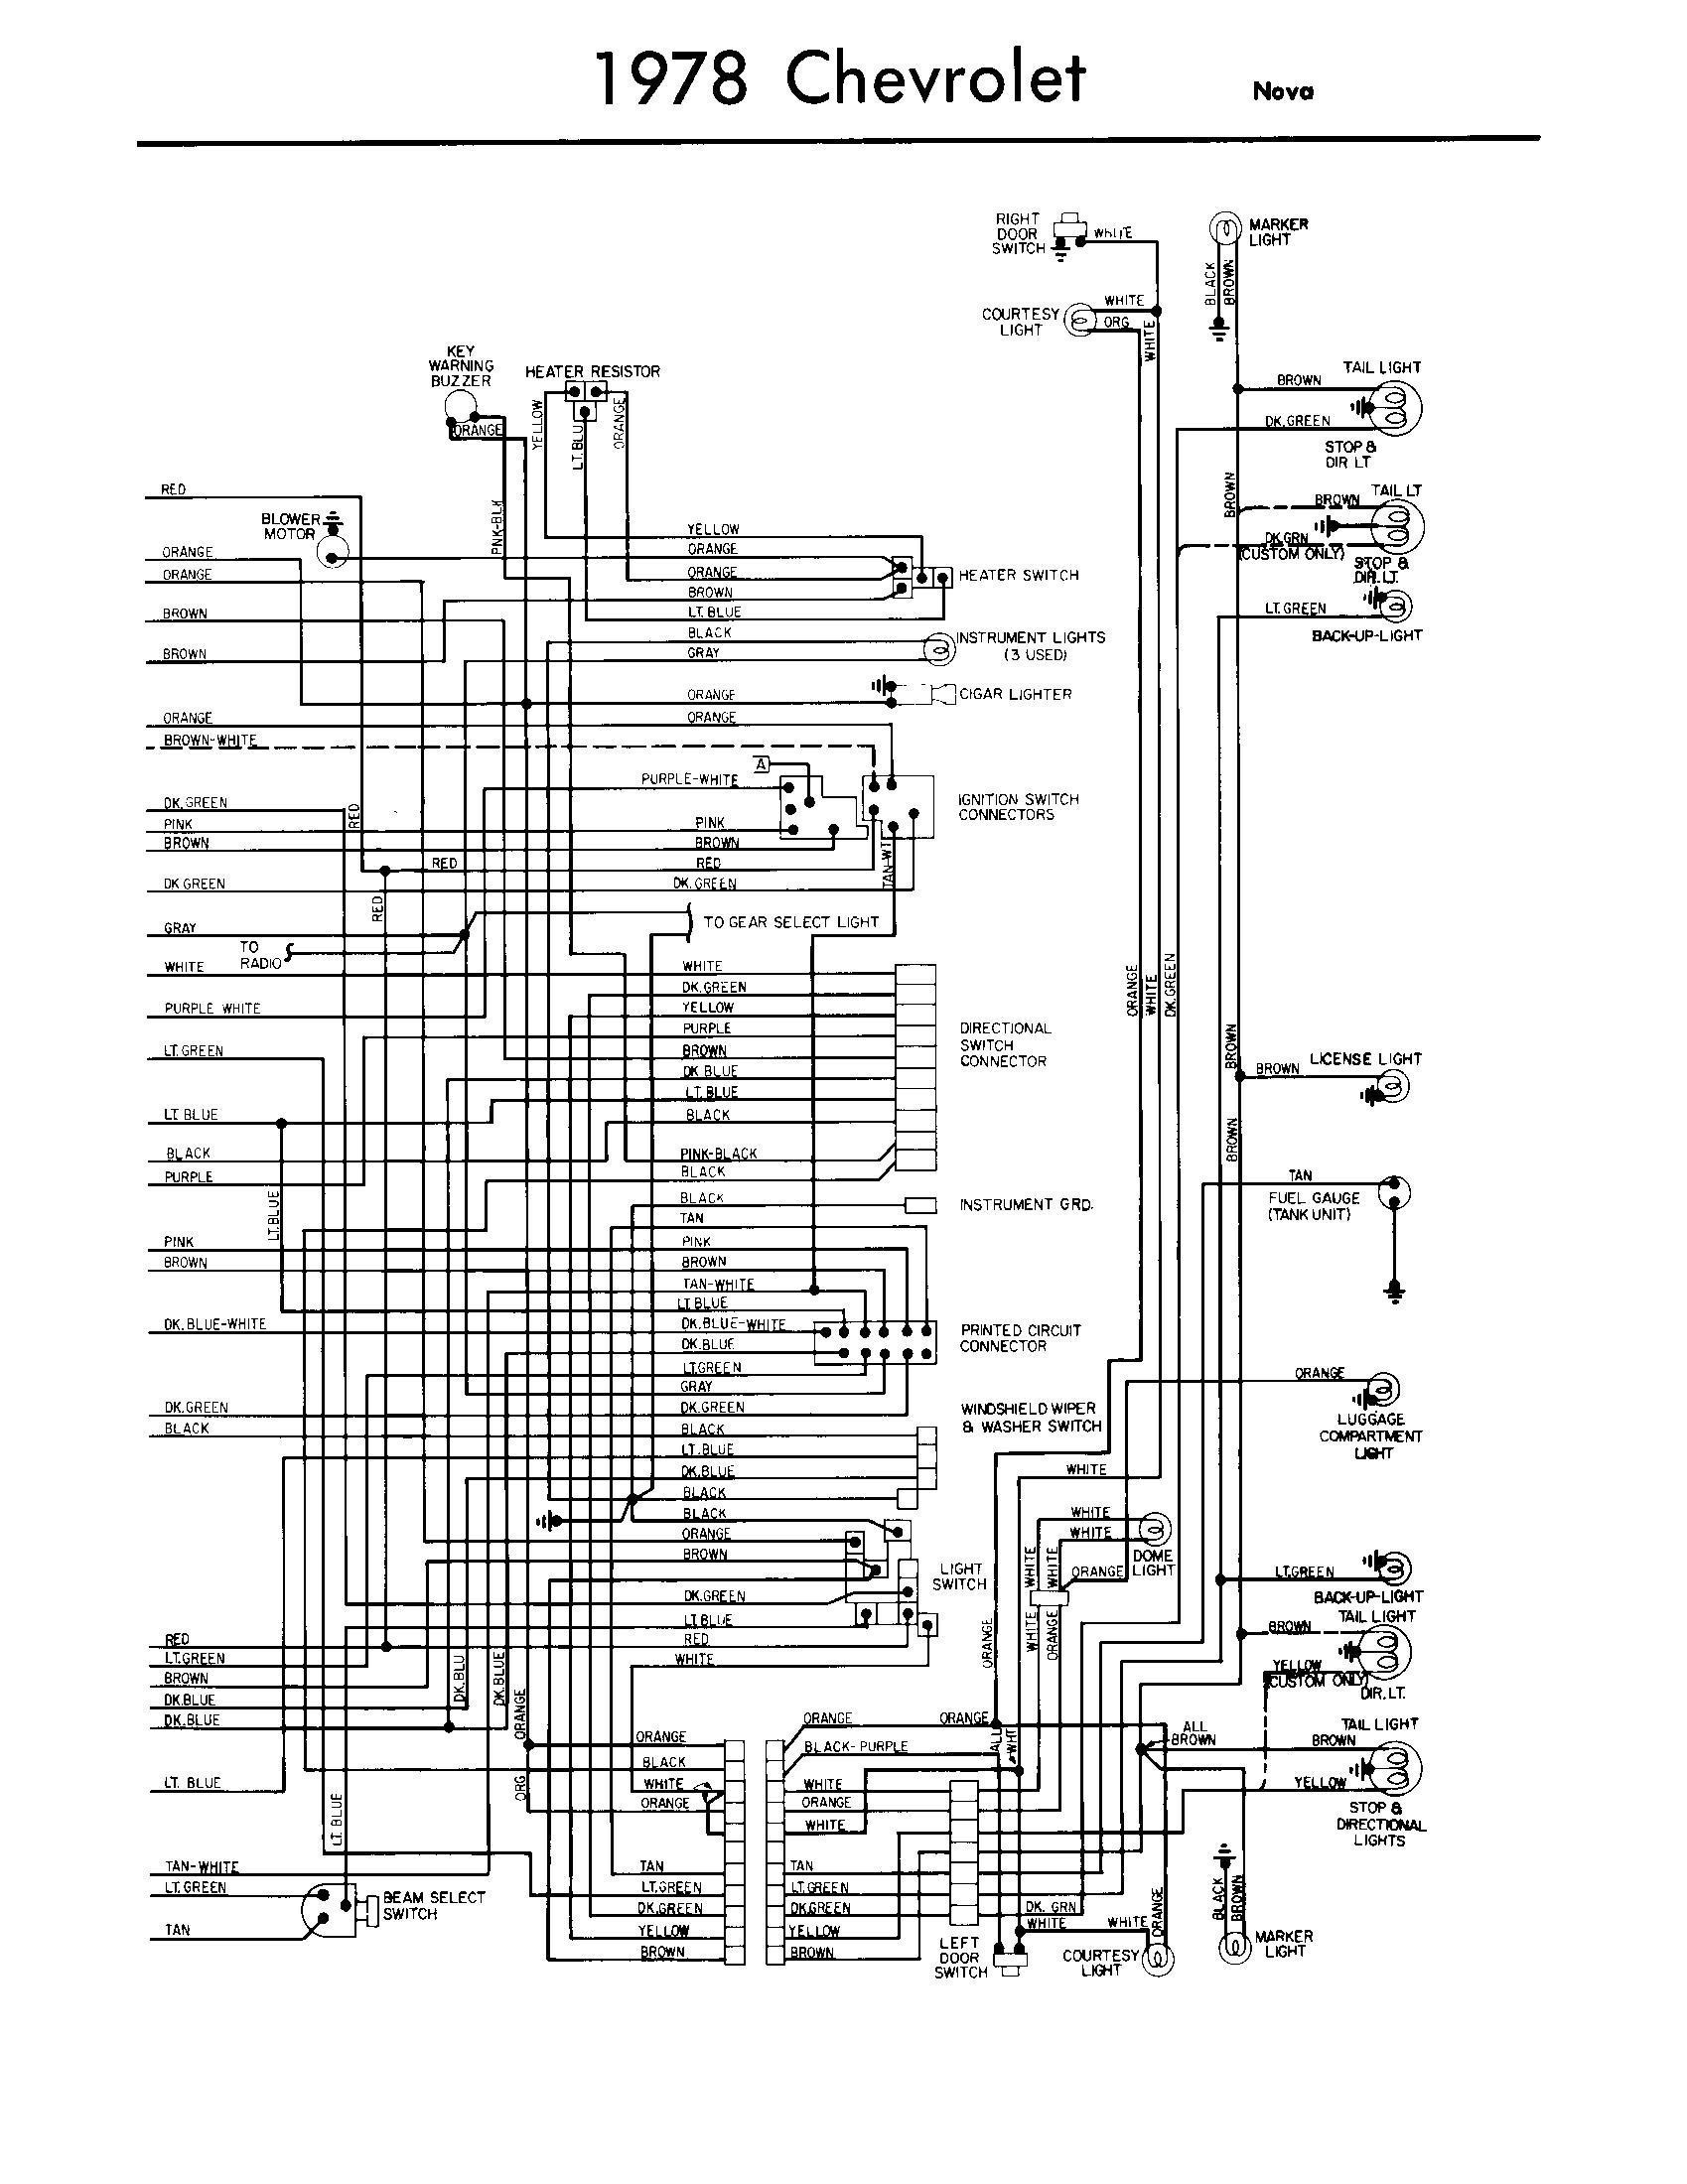 Chevy Truck Fuse Box Diagram Truck Wiring Diagram Moreover Chevy Truck Fuse Box Wiring Of Chevy Truck Fuse Box Diagram on 1980 corvette wiring harness diagram